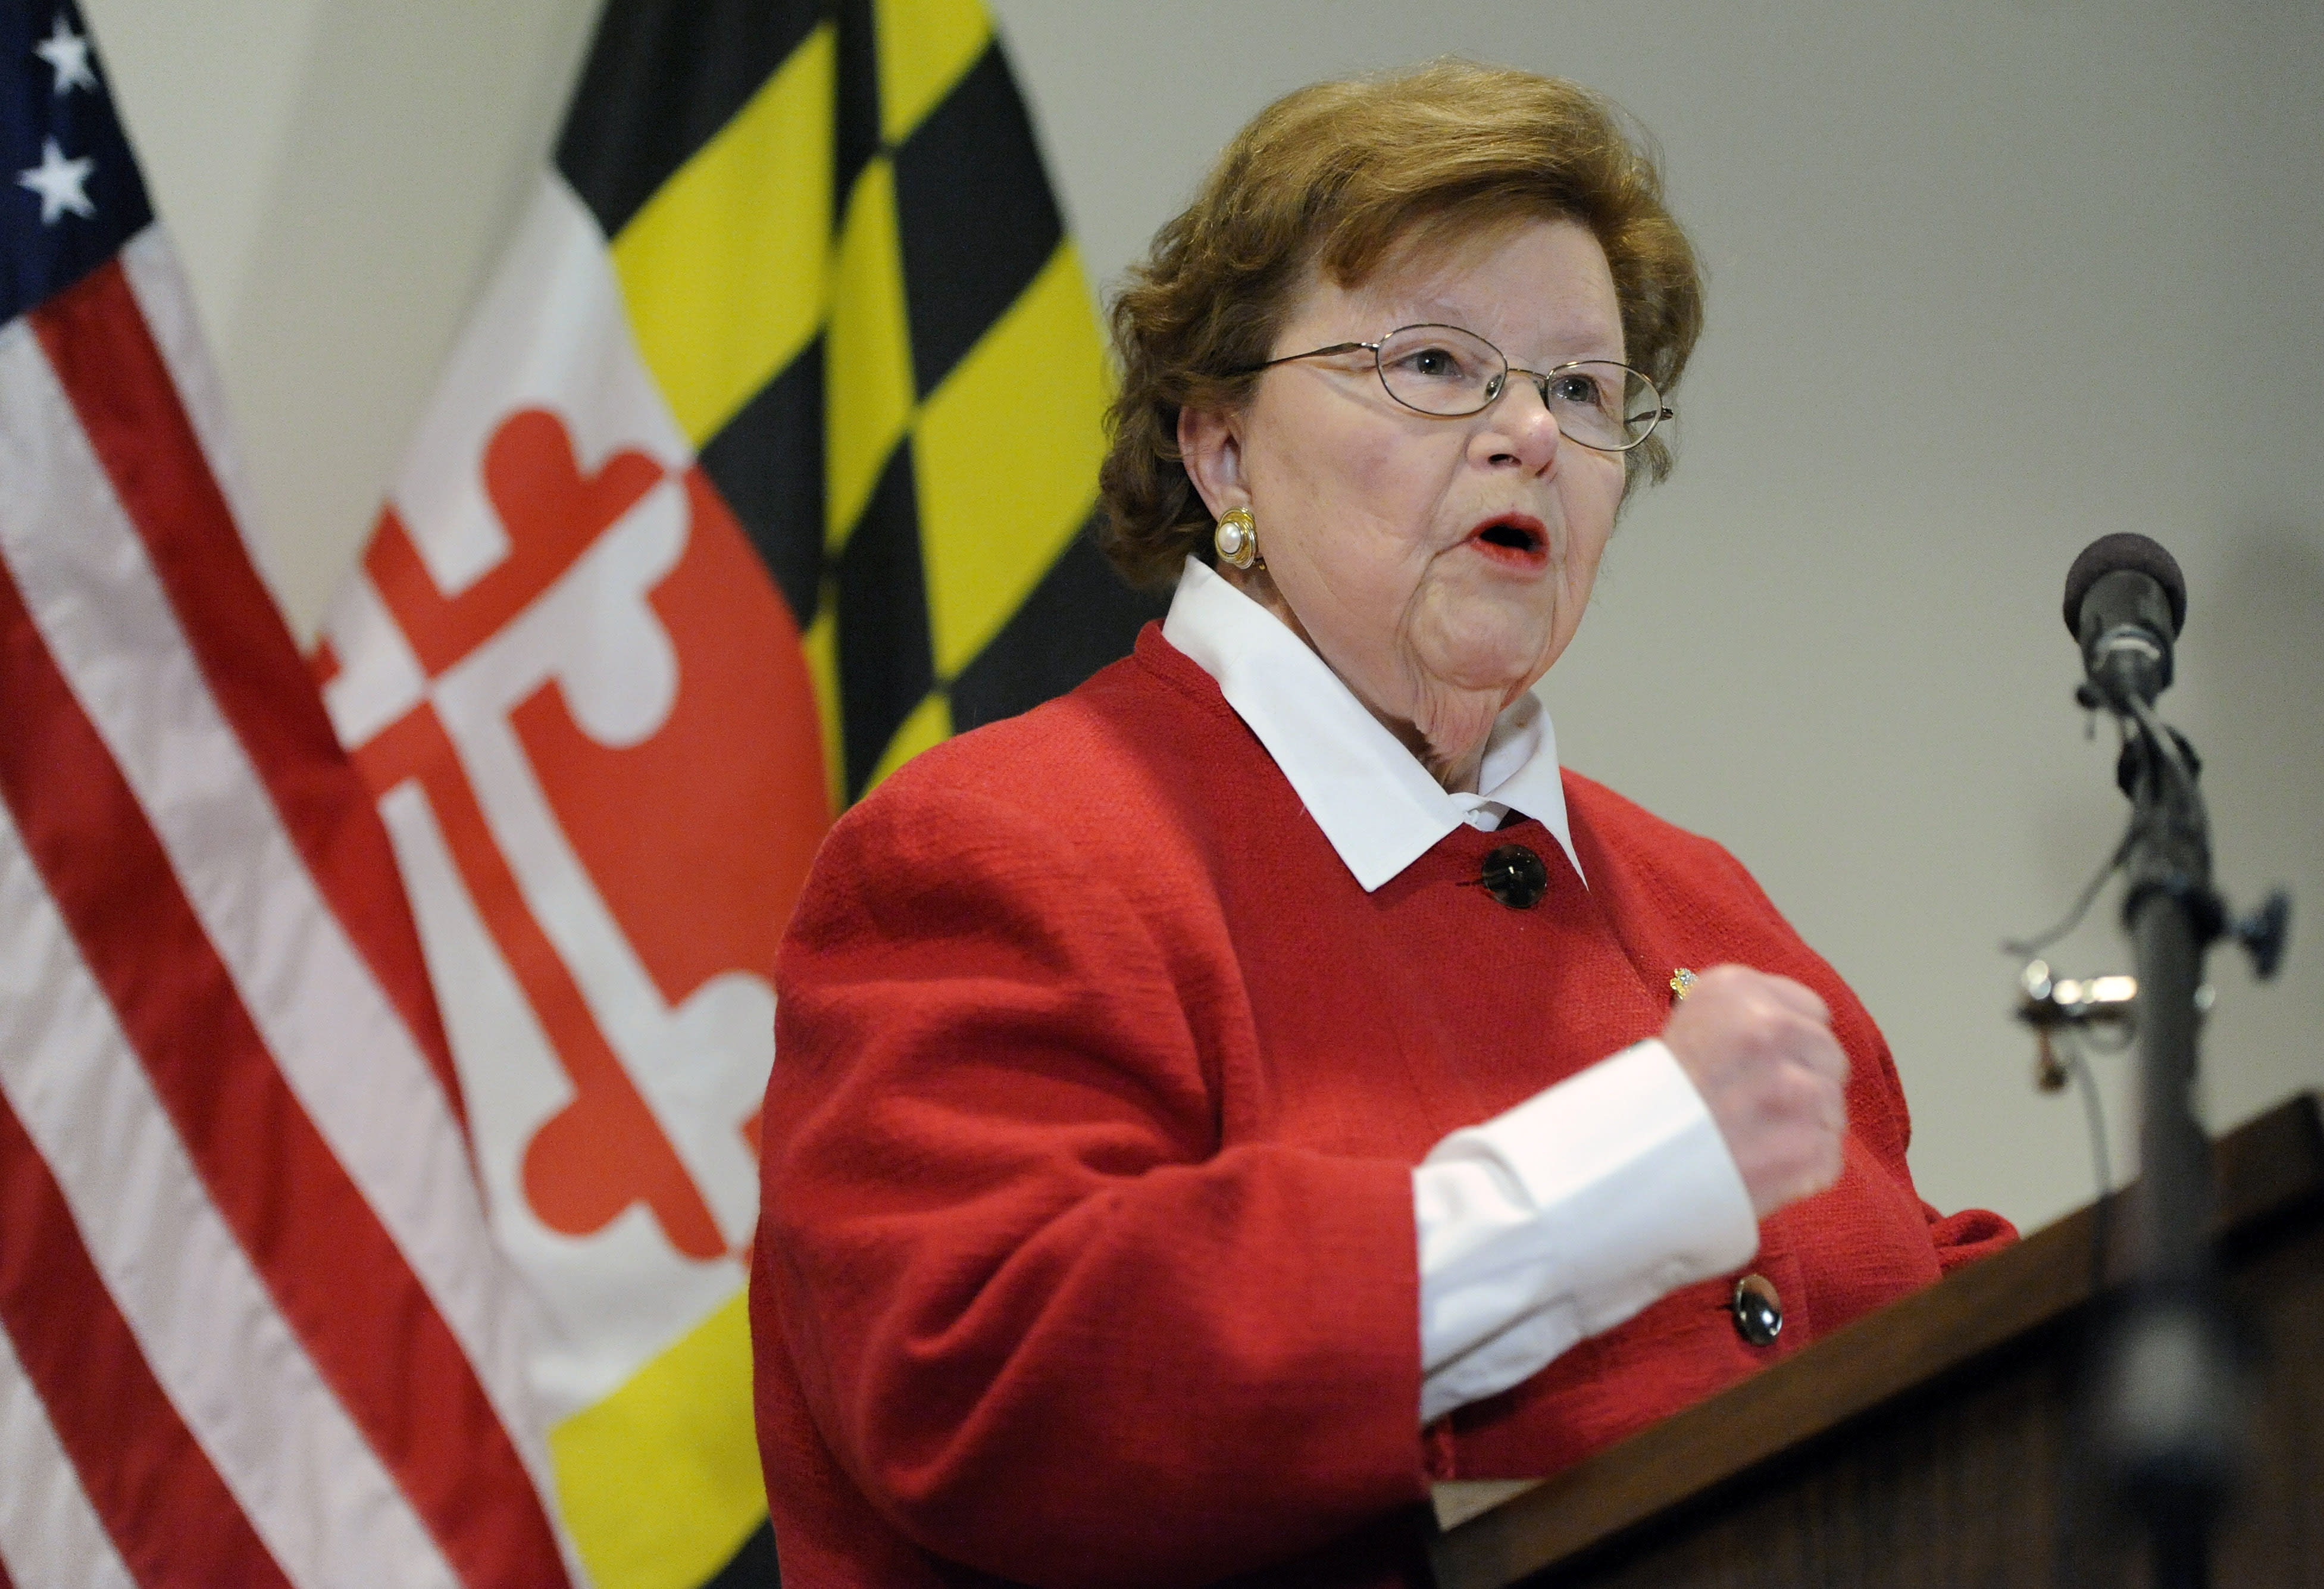 U.S. Senator Barbara Mikulski announces her retirement